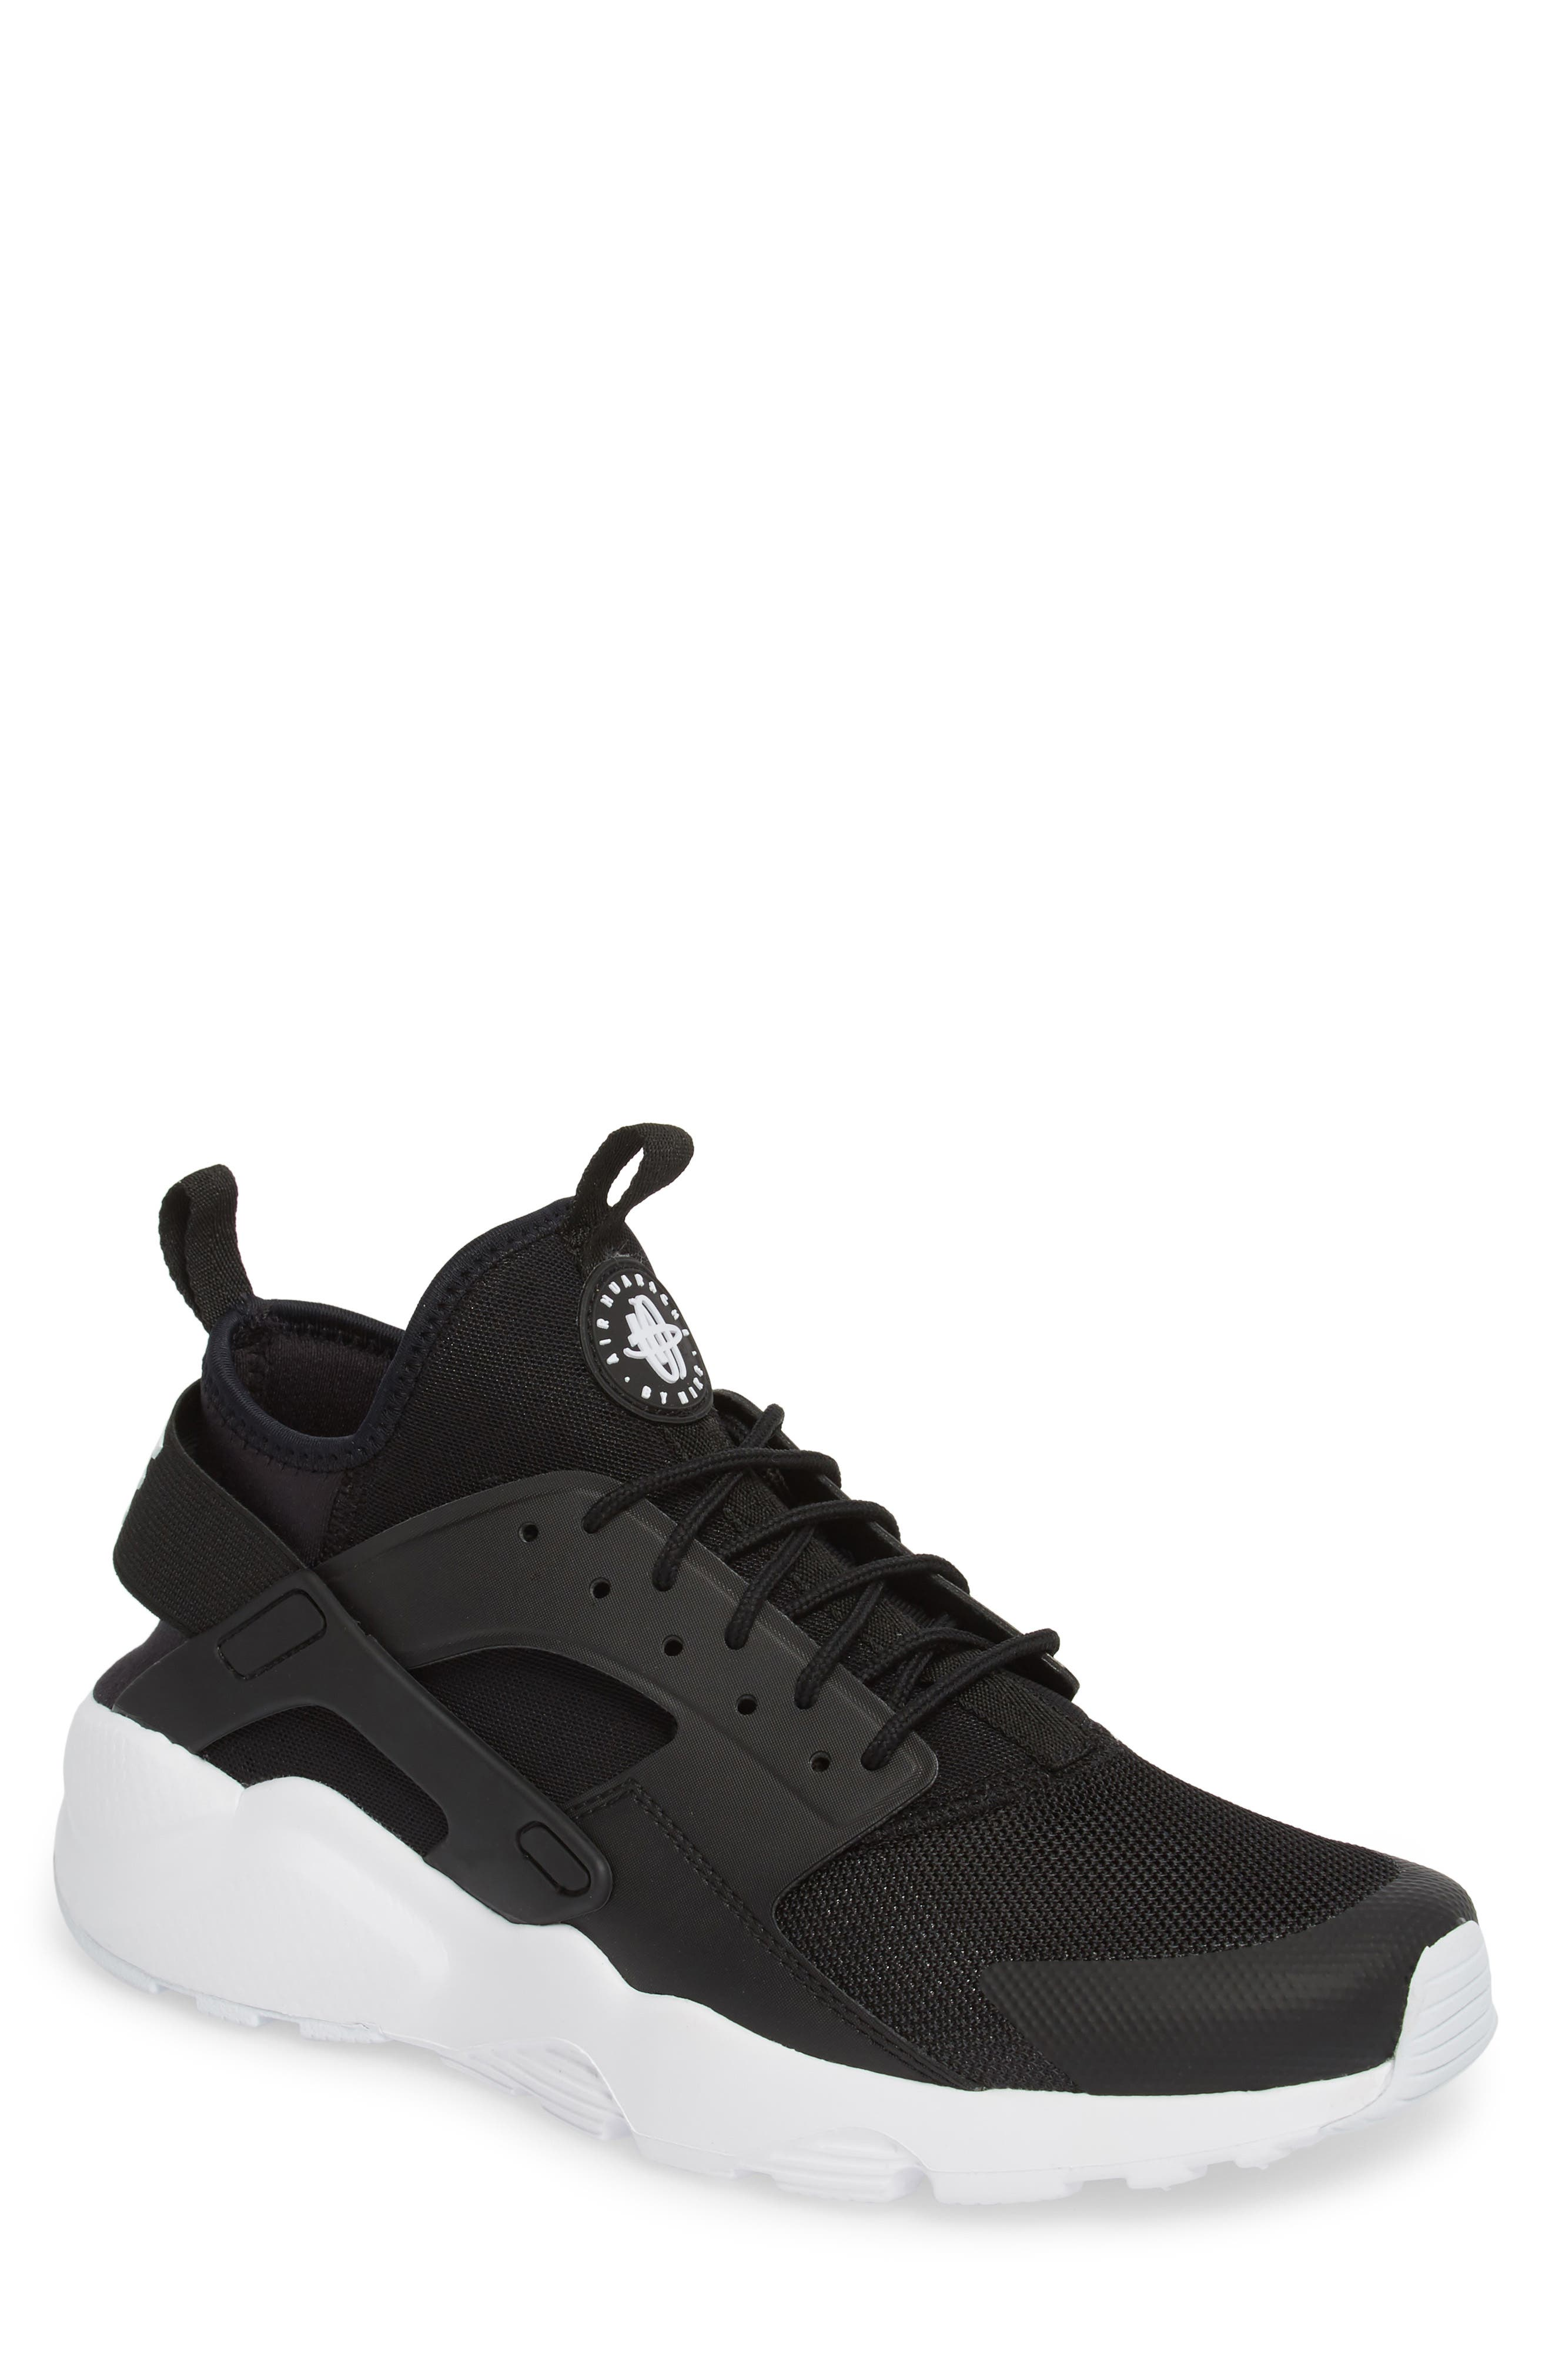 Outlet Nike USee Run 5.0 Women Outlet Nike USee v2 5.0Outlet Nike USee run 2 Men zalandoOutlet Nik